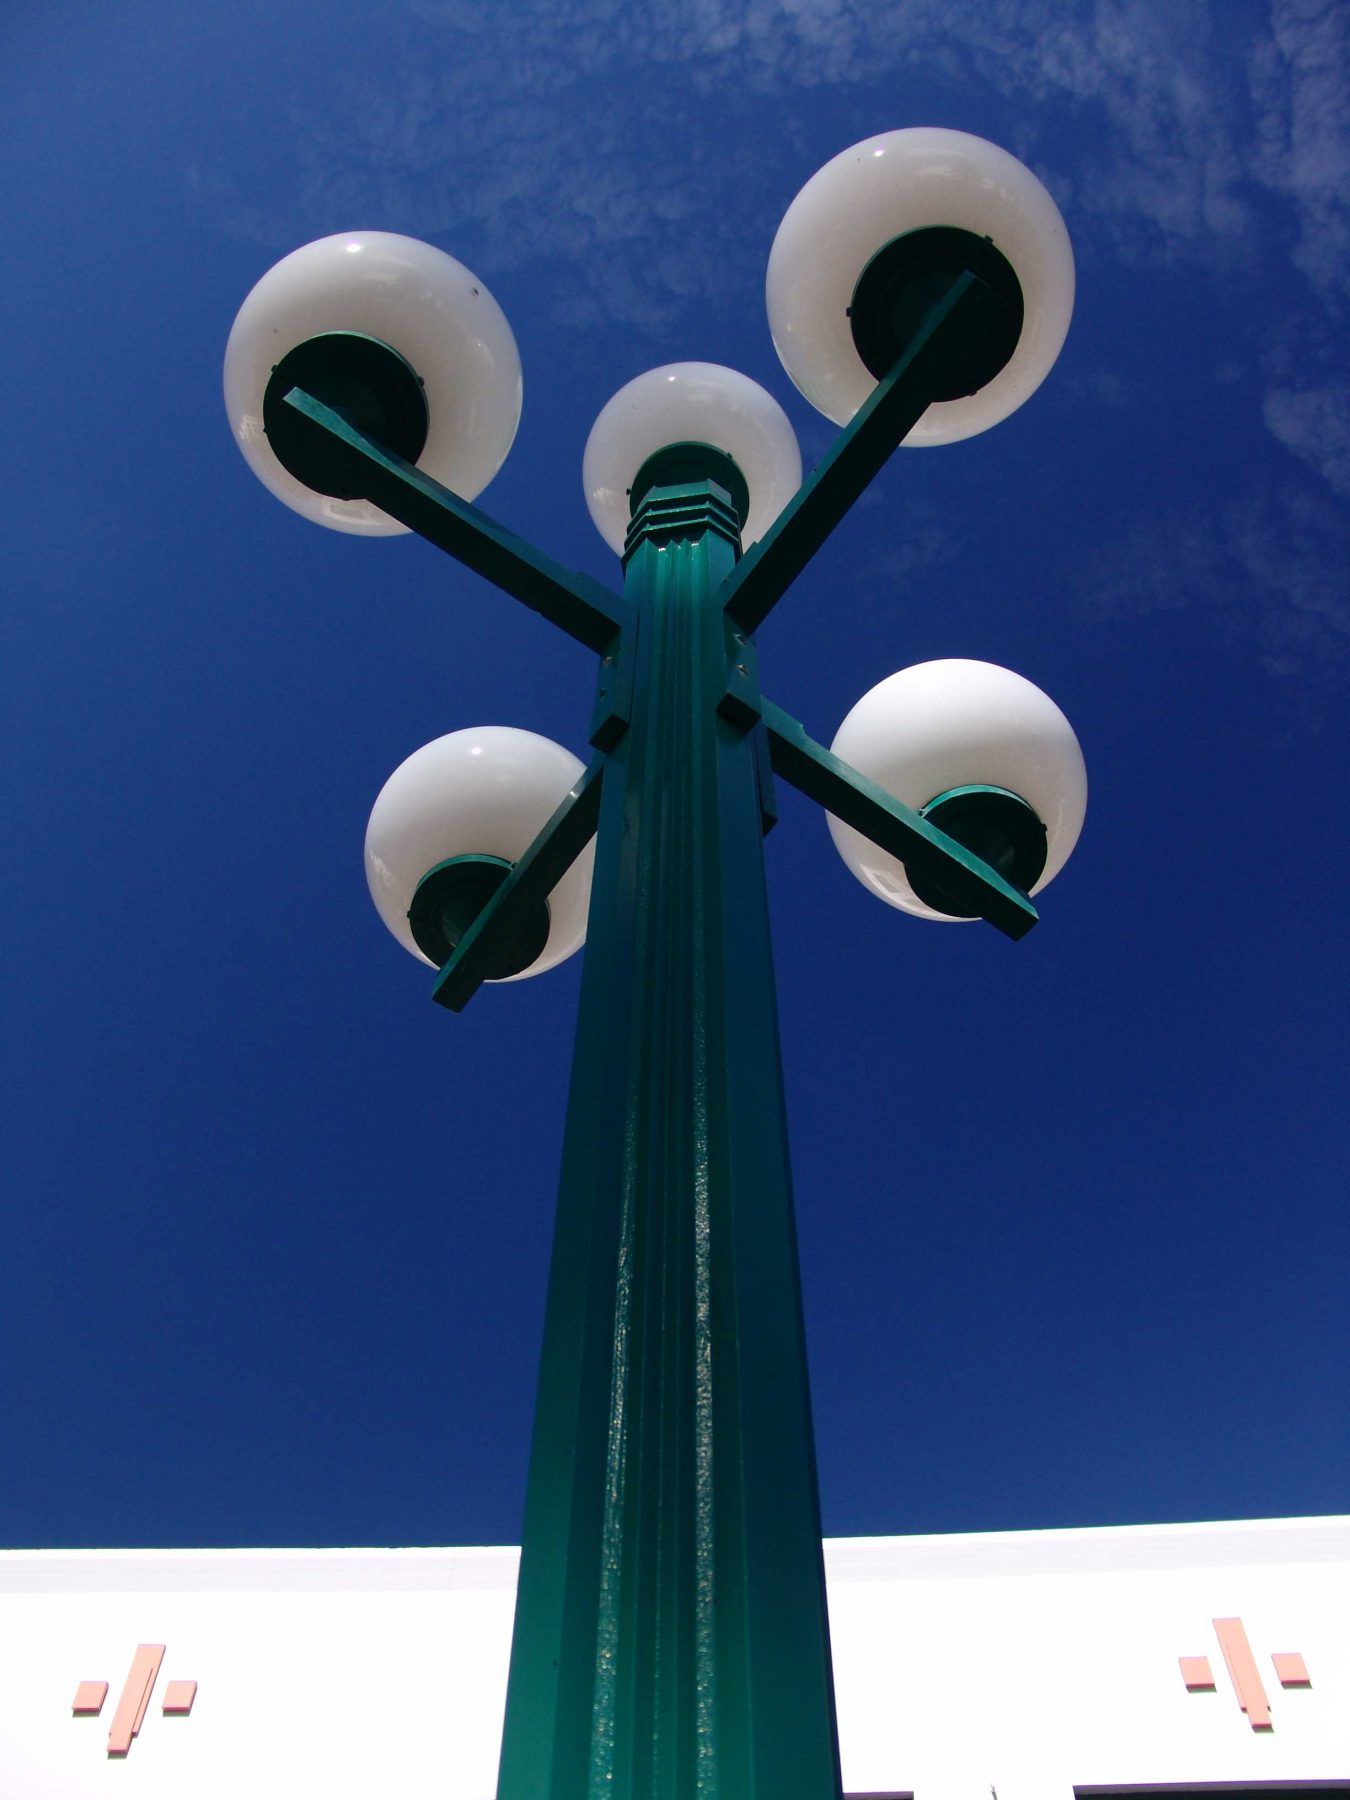 Looking up at a green streetlamp five white globe shades